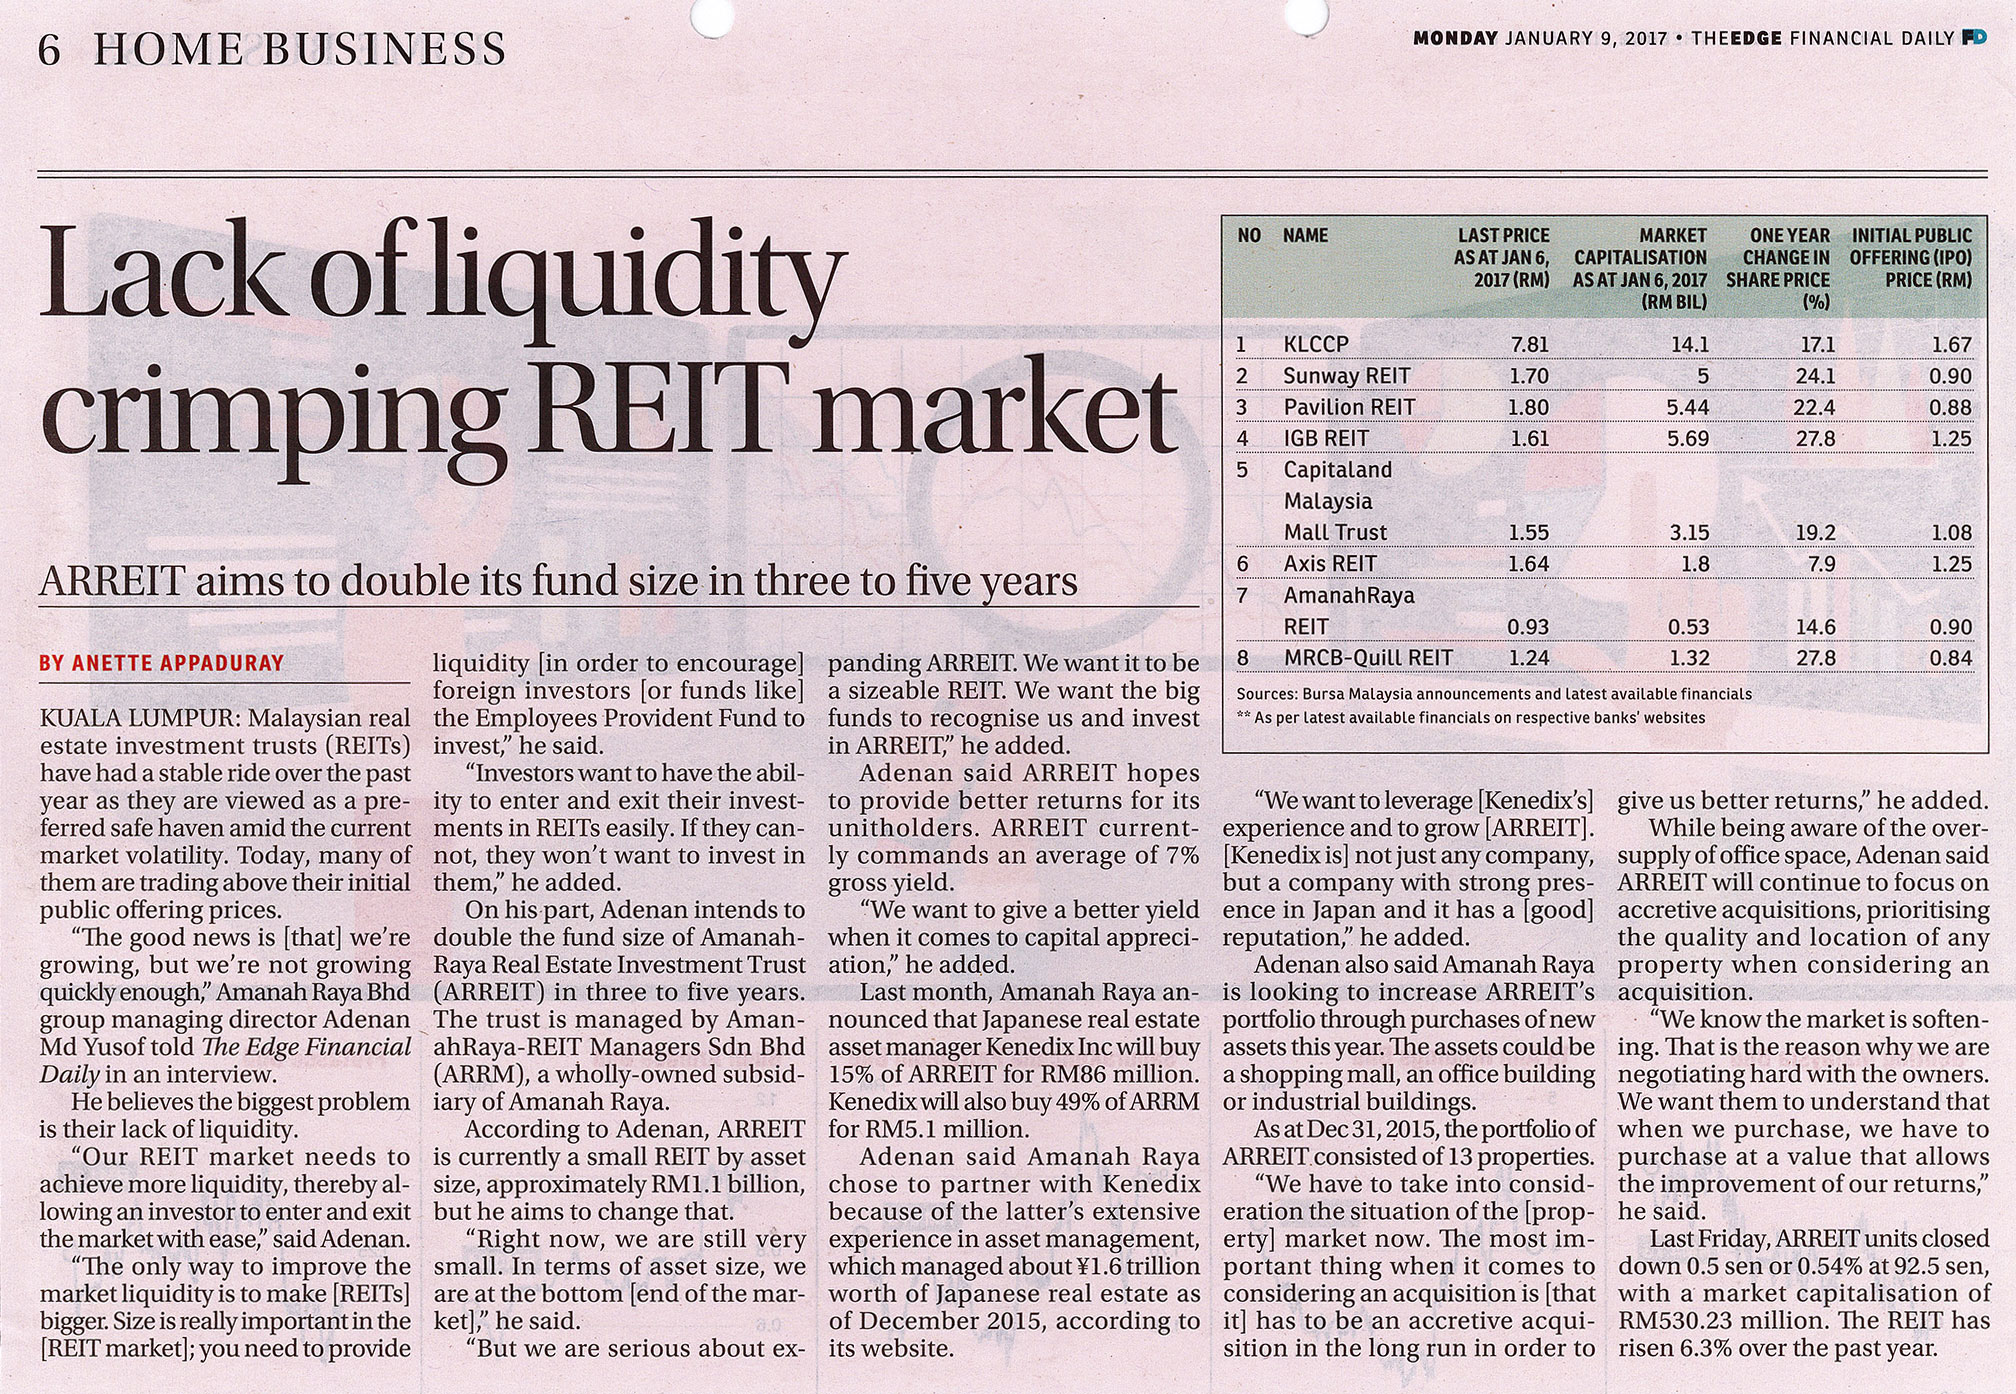 Malaysian Real Estate Investment Trusts (REITs) have had a stable ride over the past year as they are viewed as a preferred safe haven amid the current market volatility. Today, many of them are trading above their initial public offering prices.